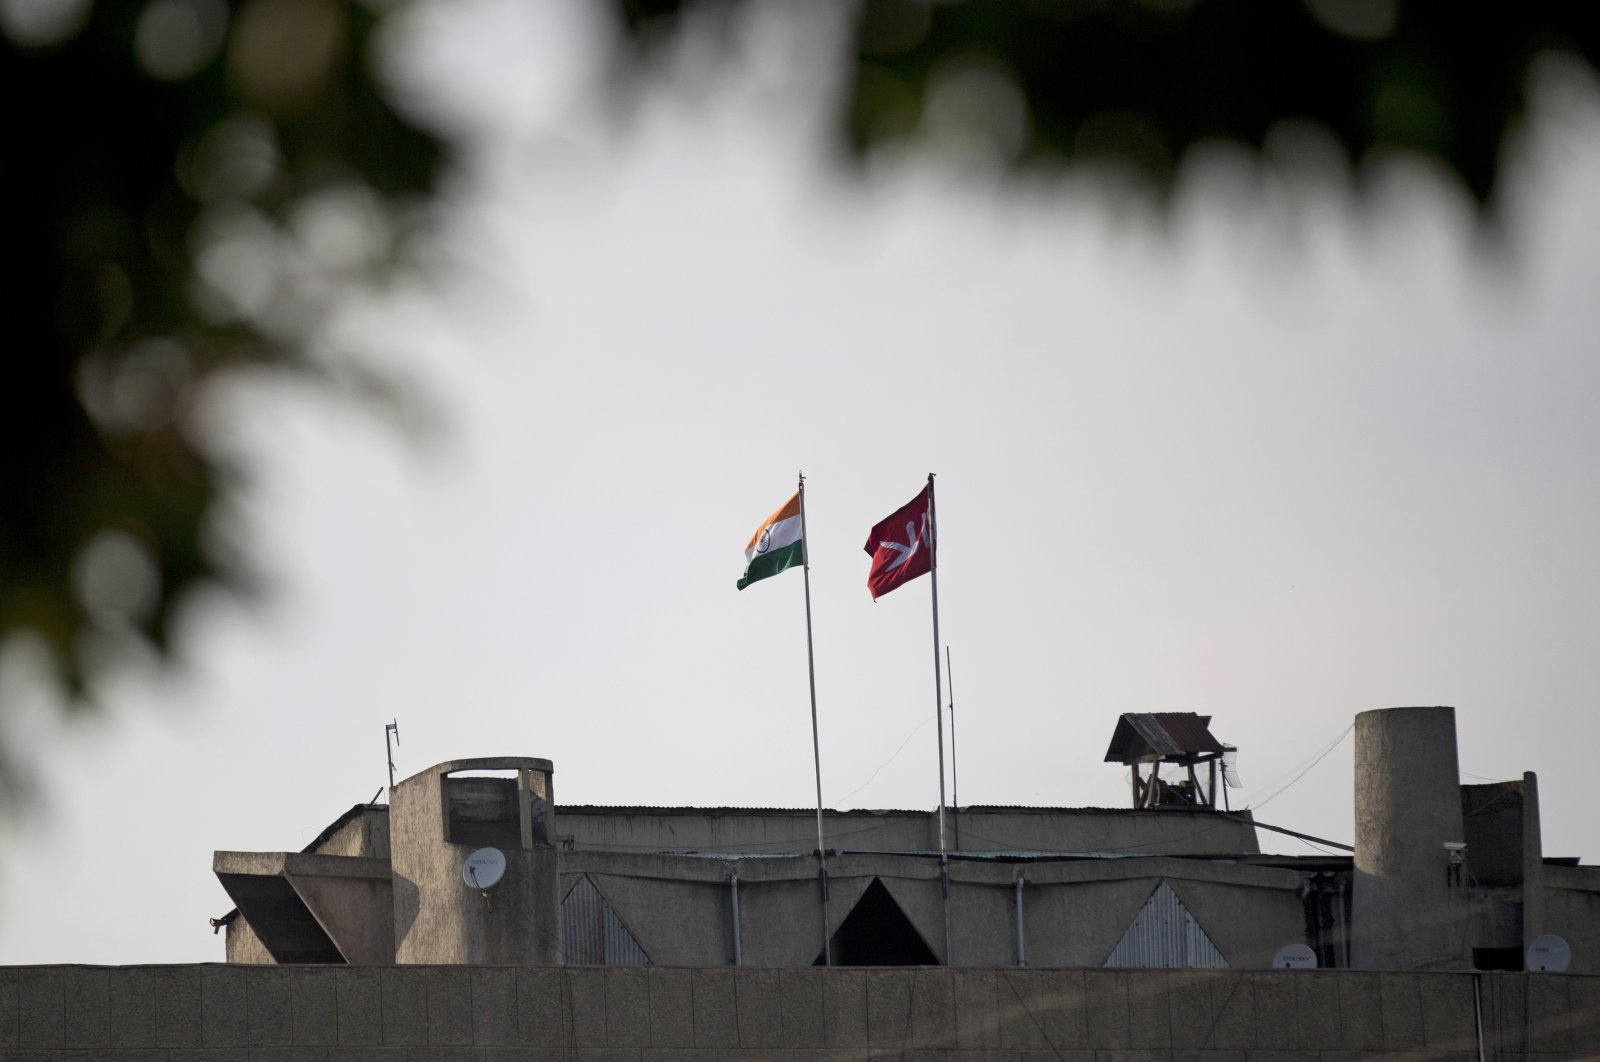 An Indian national flag (L) is hoisted next to a Jammu and Kashmir state flag on the government secretariat building after New Delhi scrapped the disputed region's semi-autonomy in Srinagar, Indian controlled Kashmir, Aug. 9, 2019. (AP Photo)